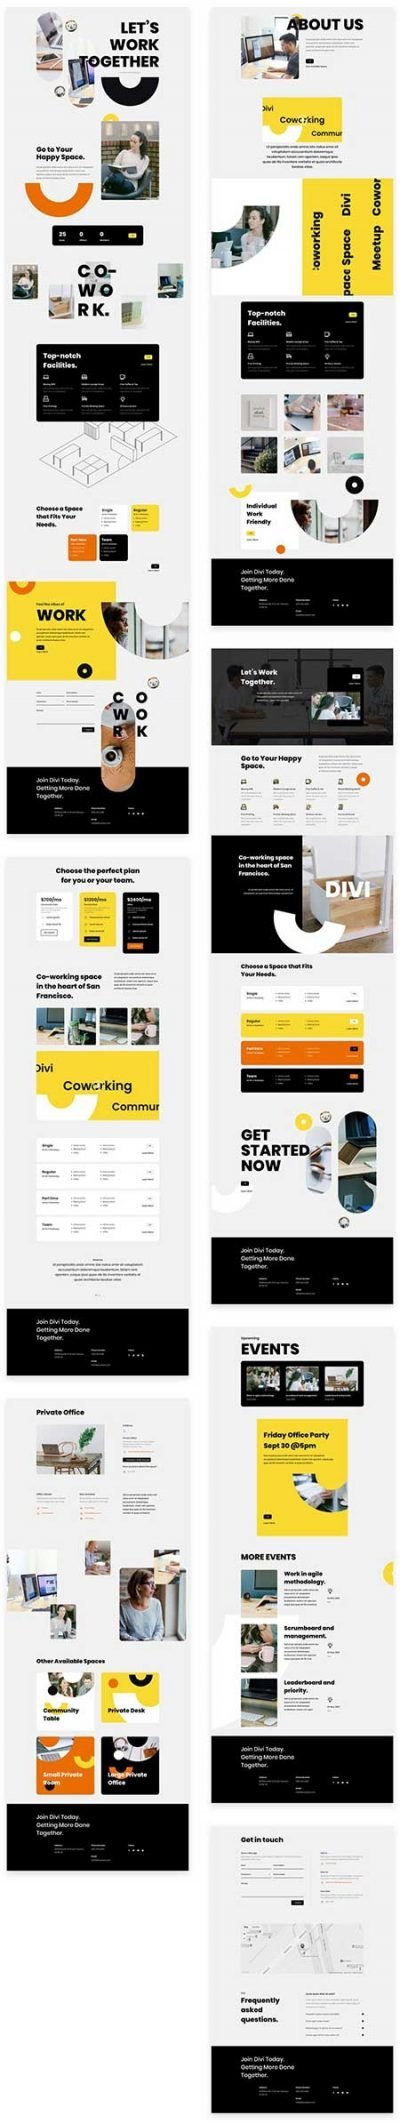 Divi coworking space layout pack